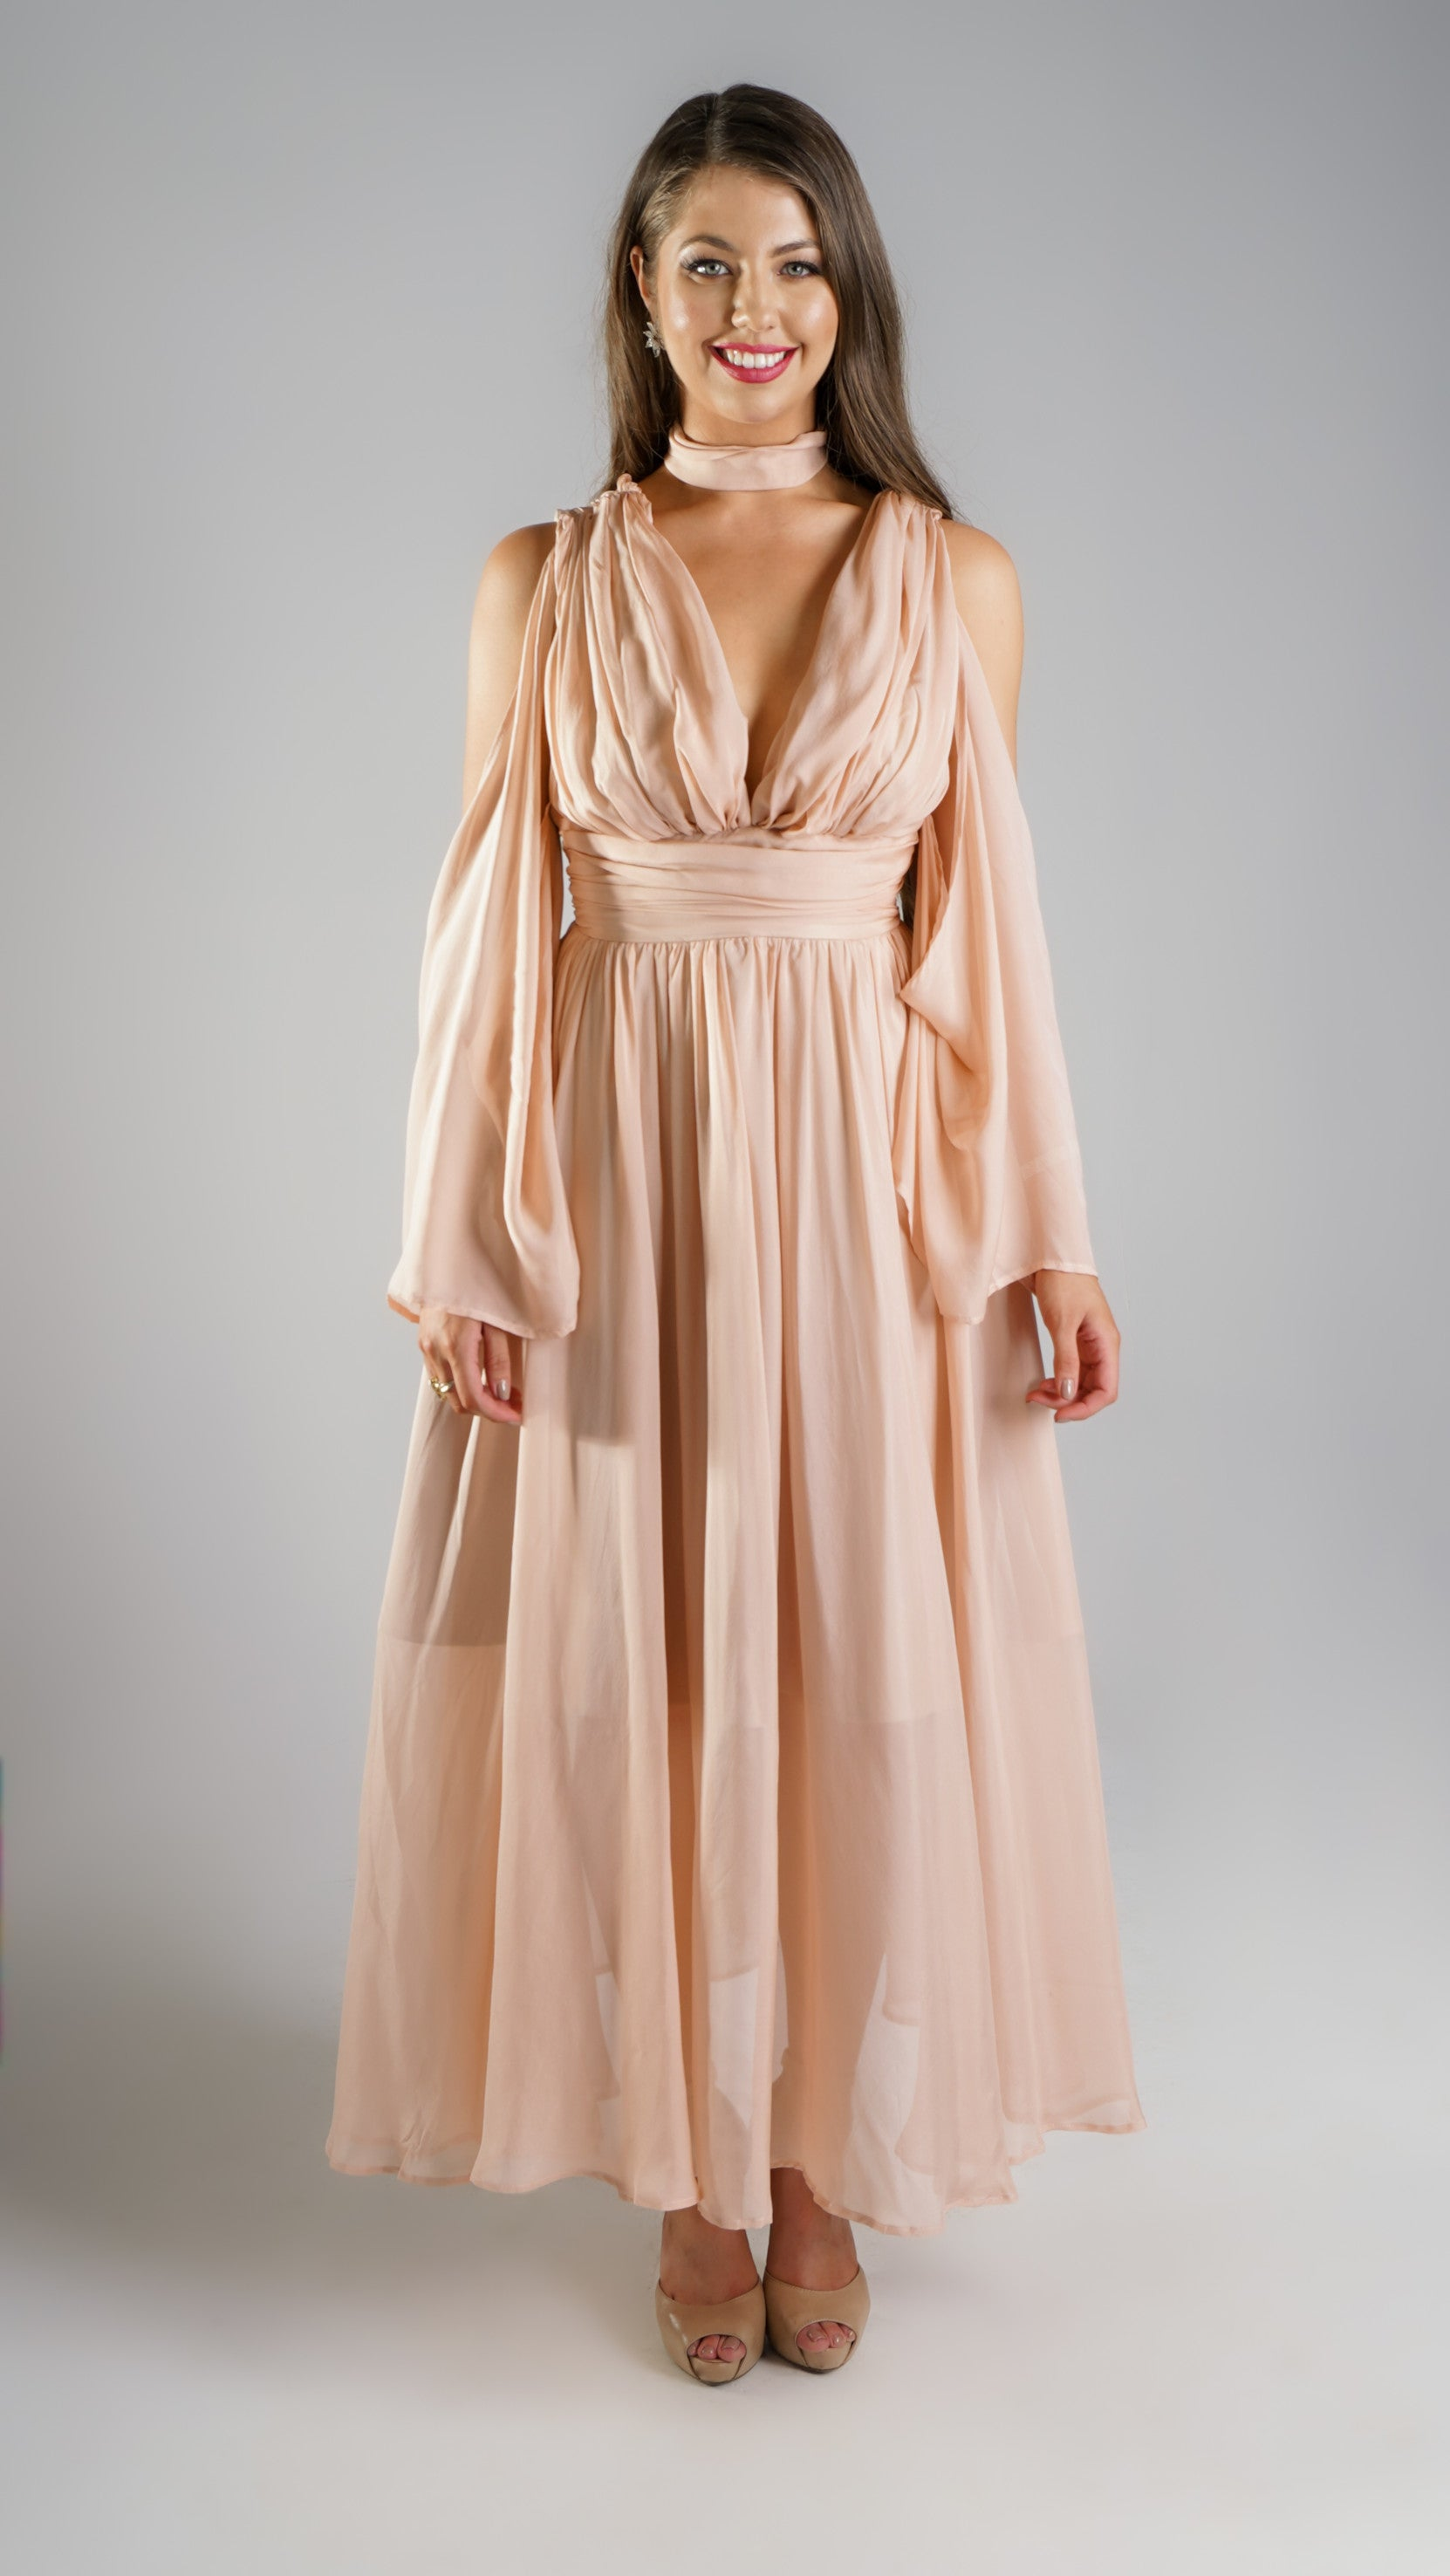 Nude Maxi Cocktail Designer Dress for Women with Detachable Sleeves